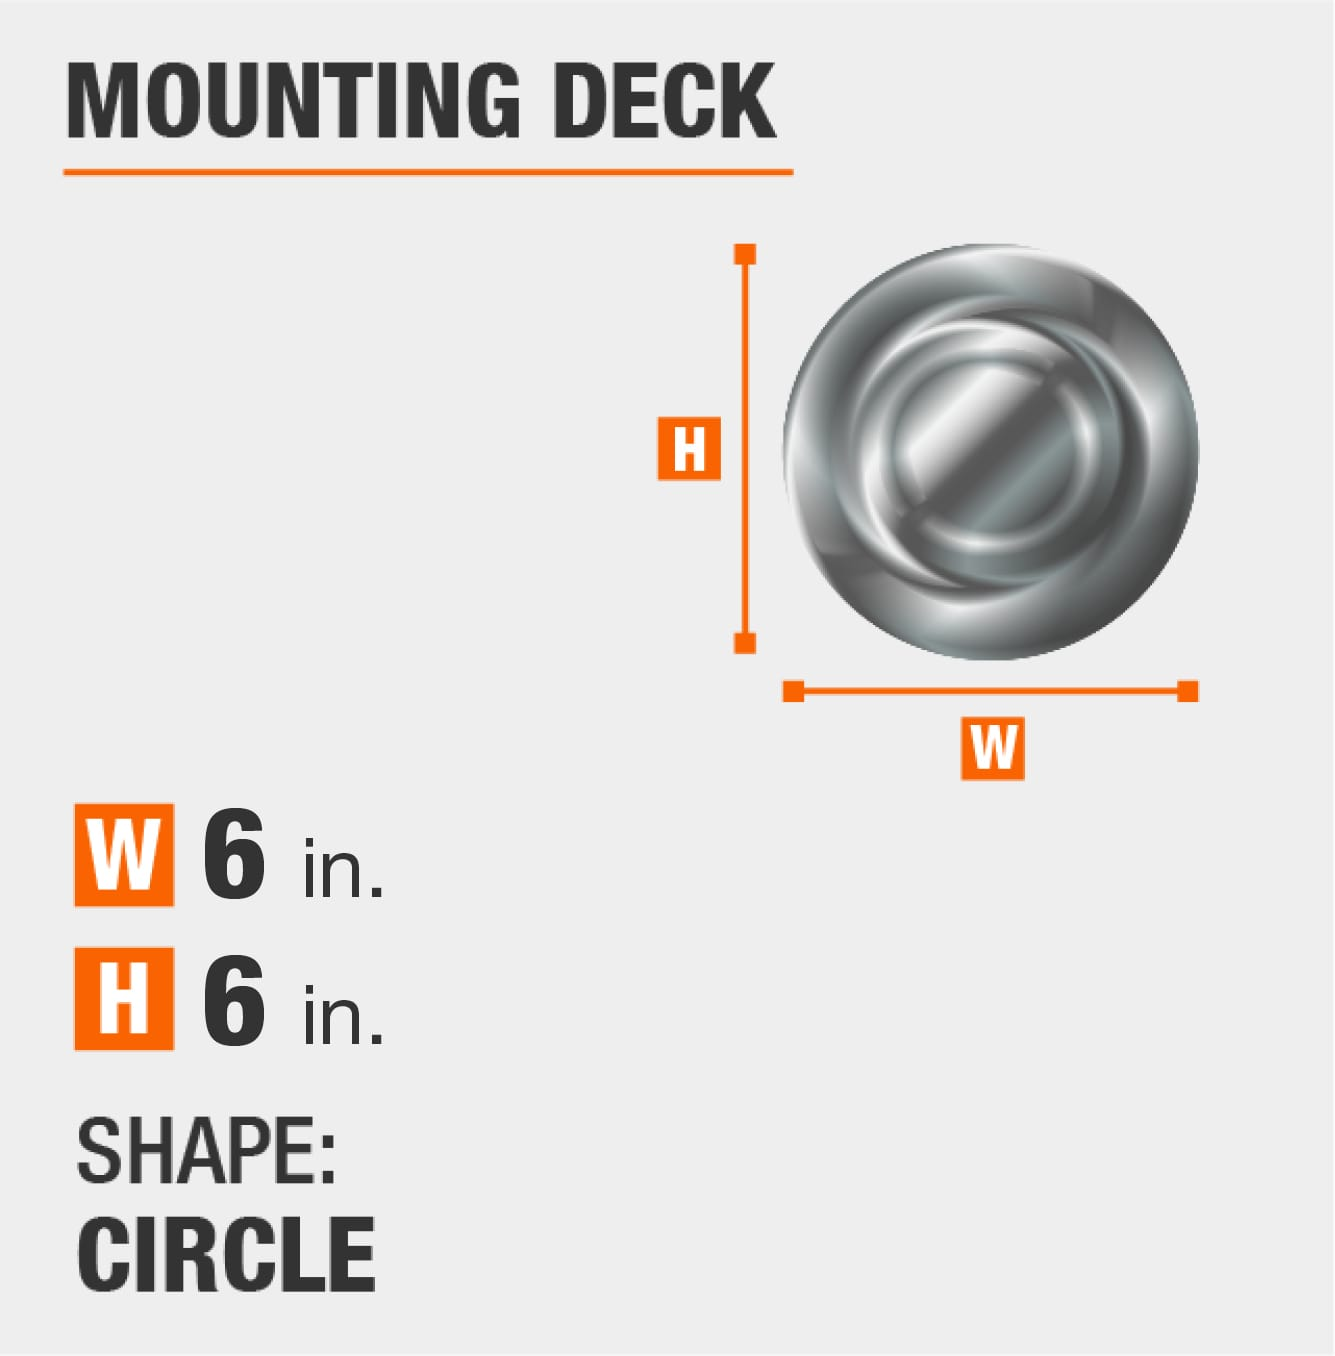 mounting deck is circular and 6 inches by 6 inches